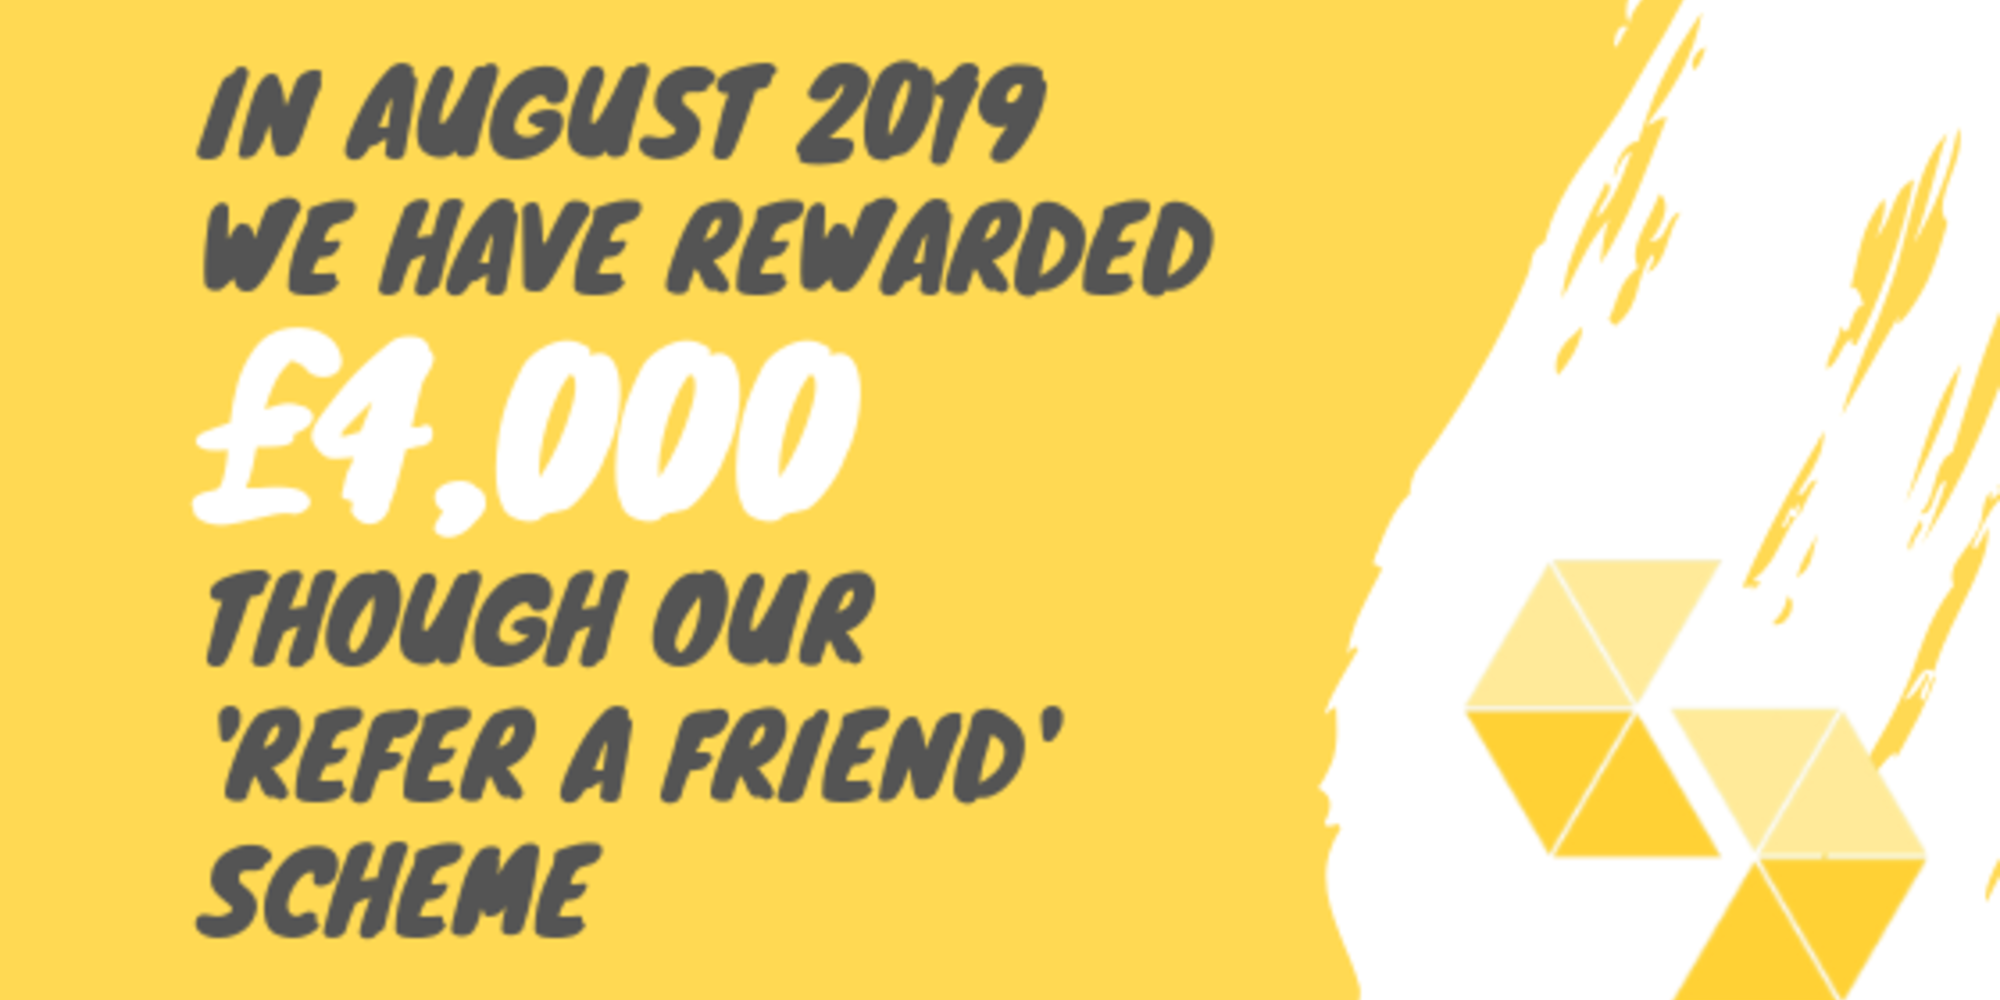 This Month Alone We Have Rewarded £4,000 Though Our 'Refer A Friend' Scheme